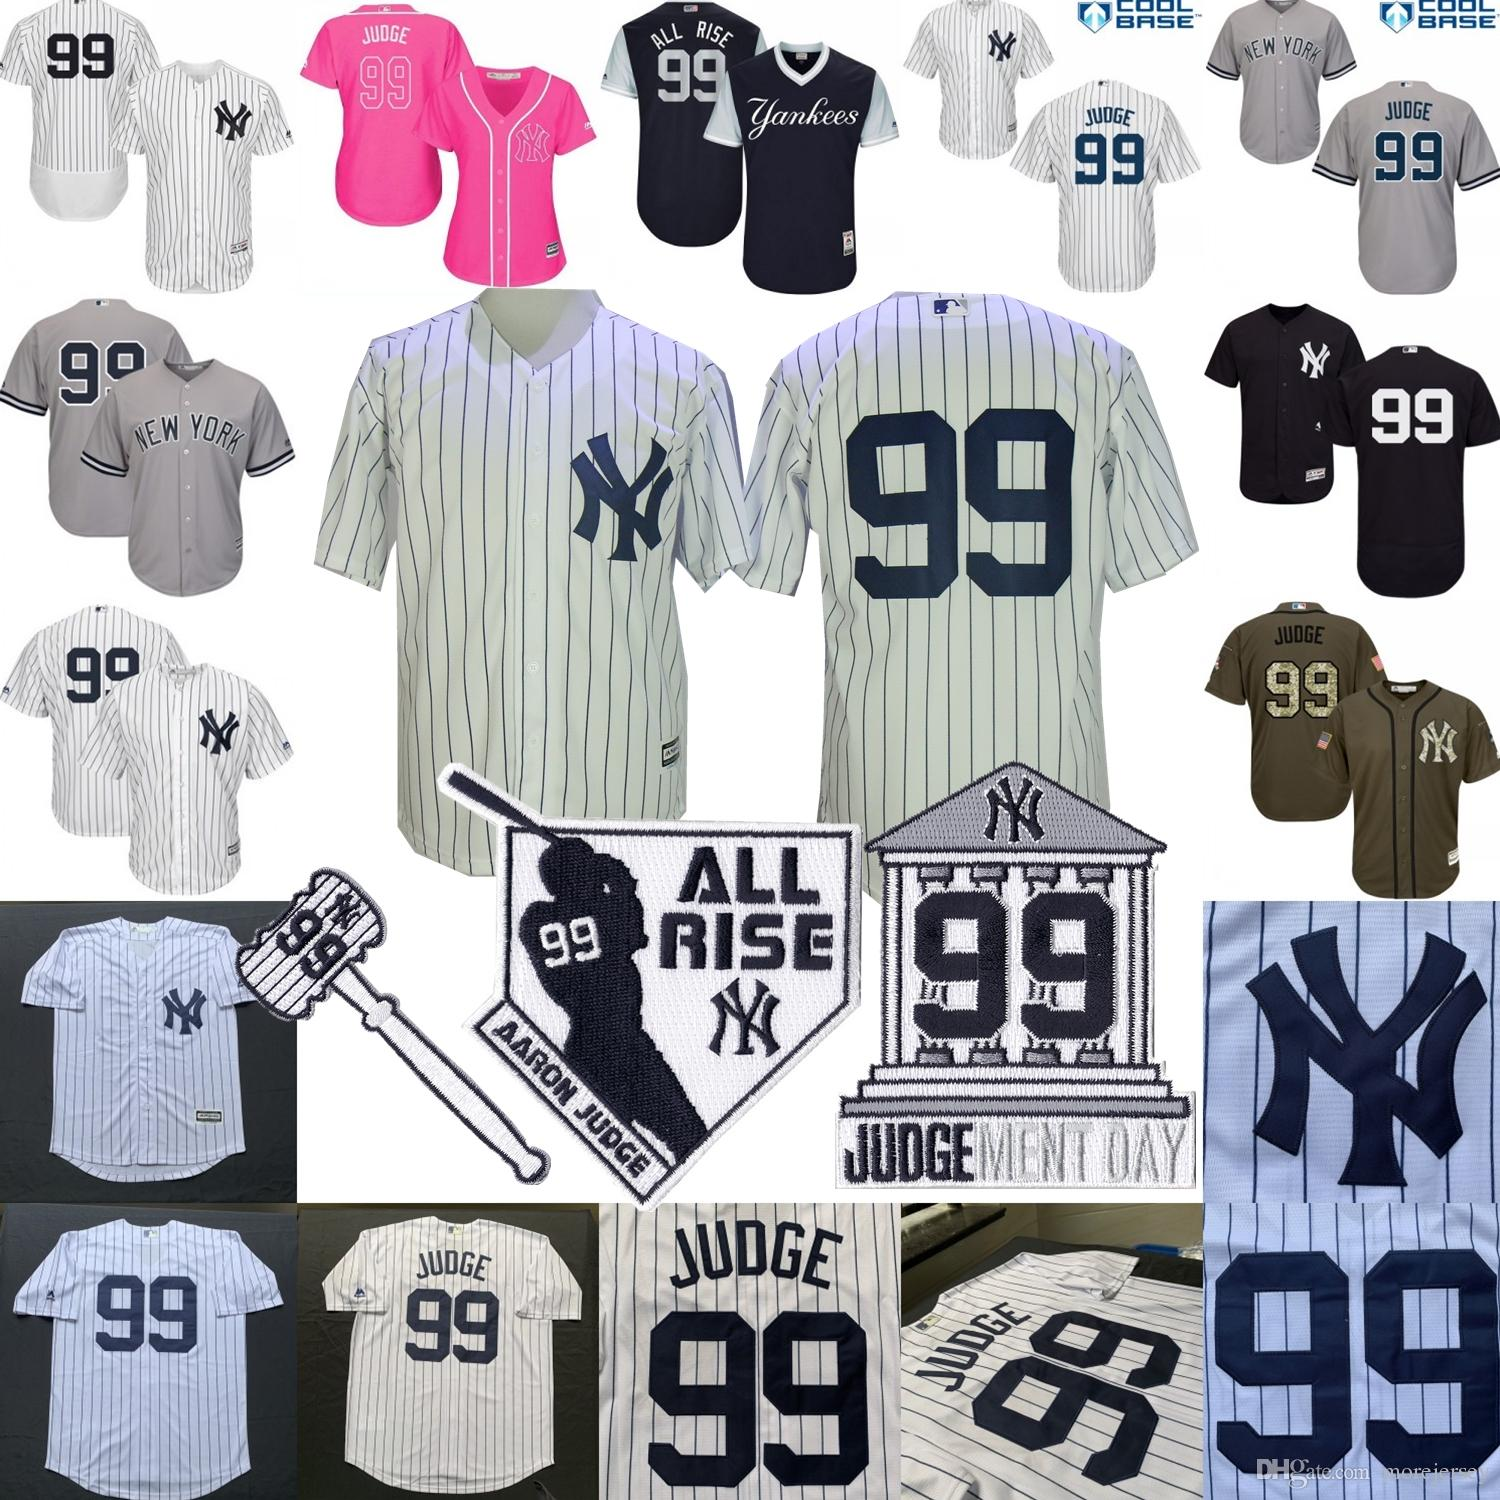 on sale 9e874 6cae8 Aaron Judge Jersey New York Baseball Yankees Jersey Men Women Youth Kid All  Rise Hammer Ment Day Patch All Stitched